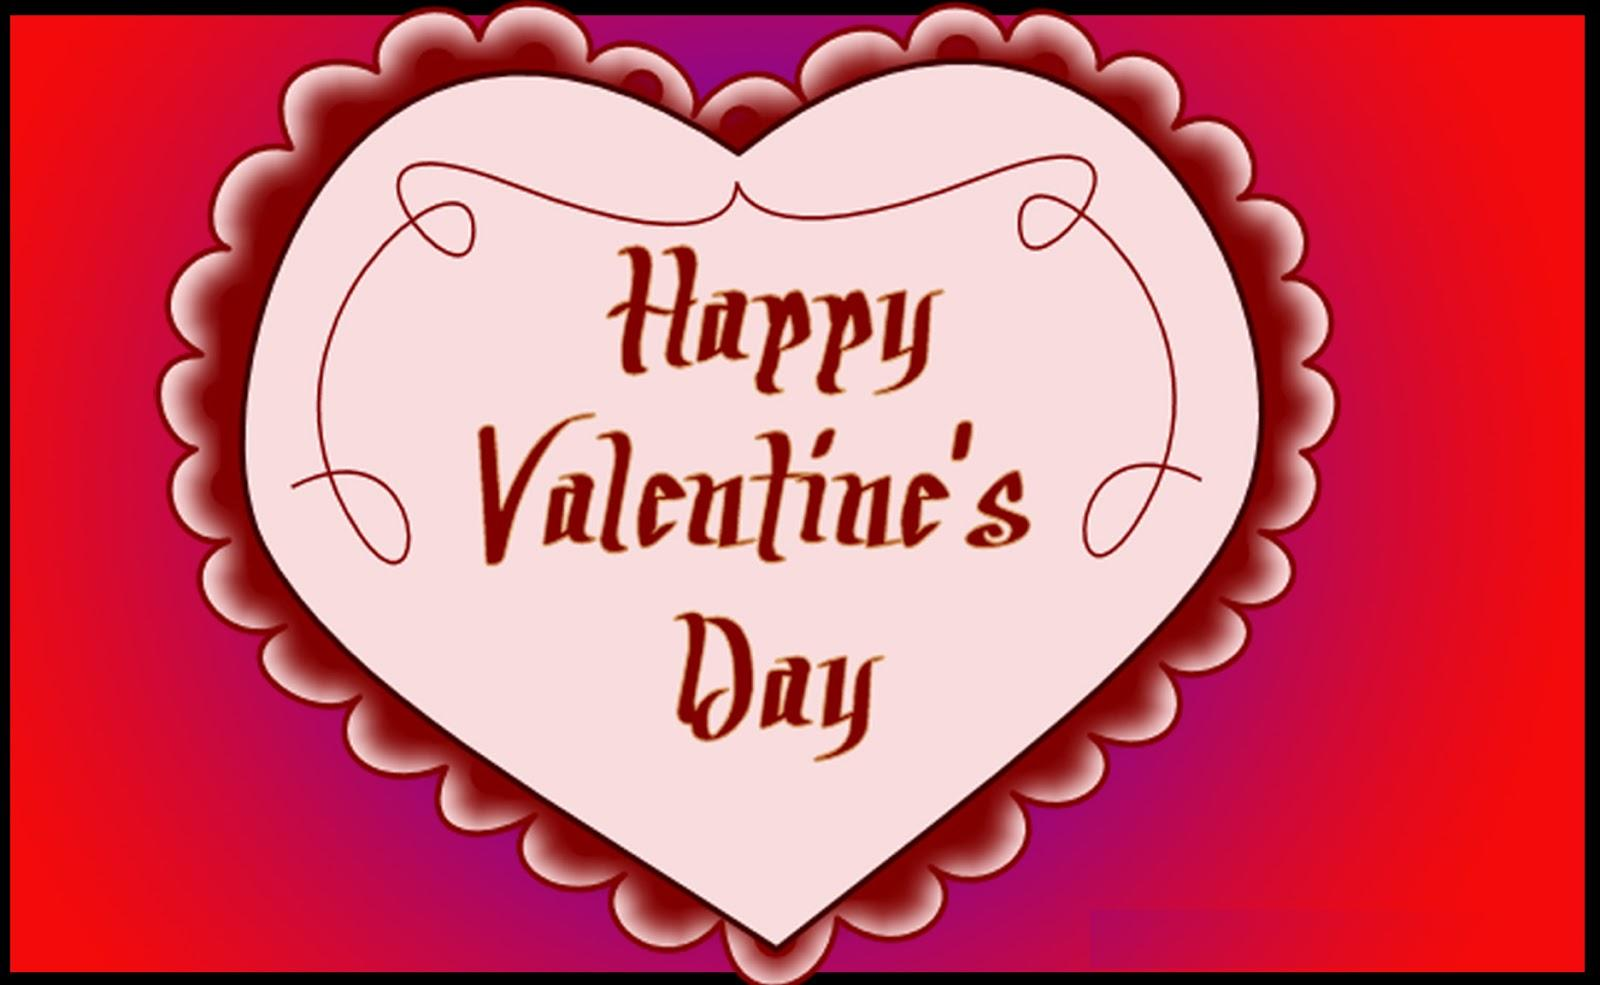 100 Happy Valentines Day Images amp Wallpapers For Girlfriend 1600x985